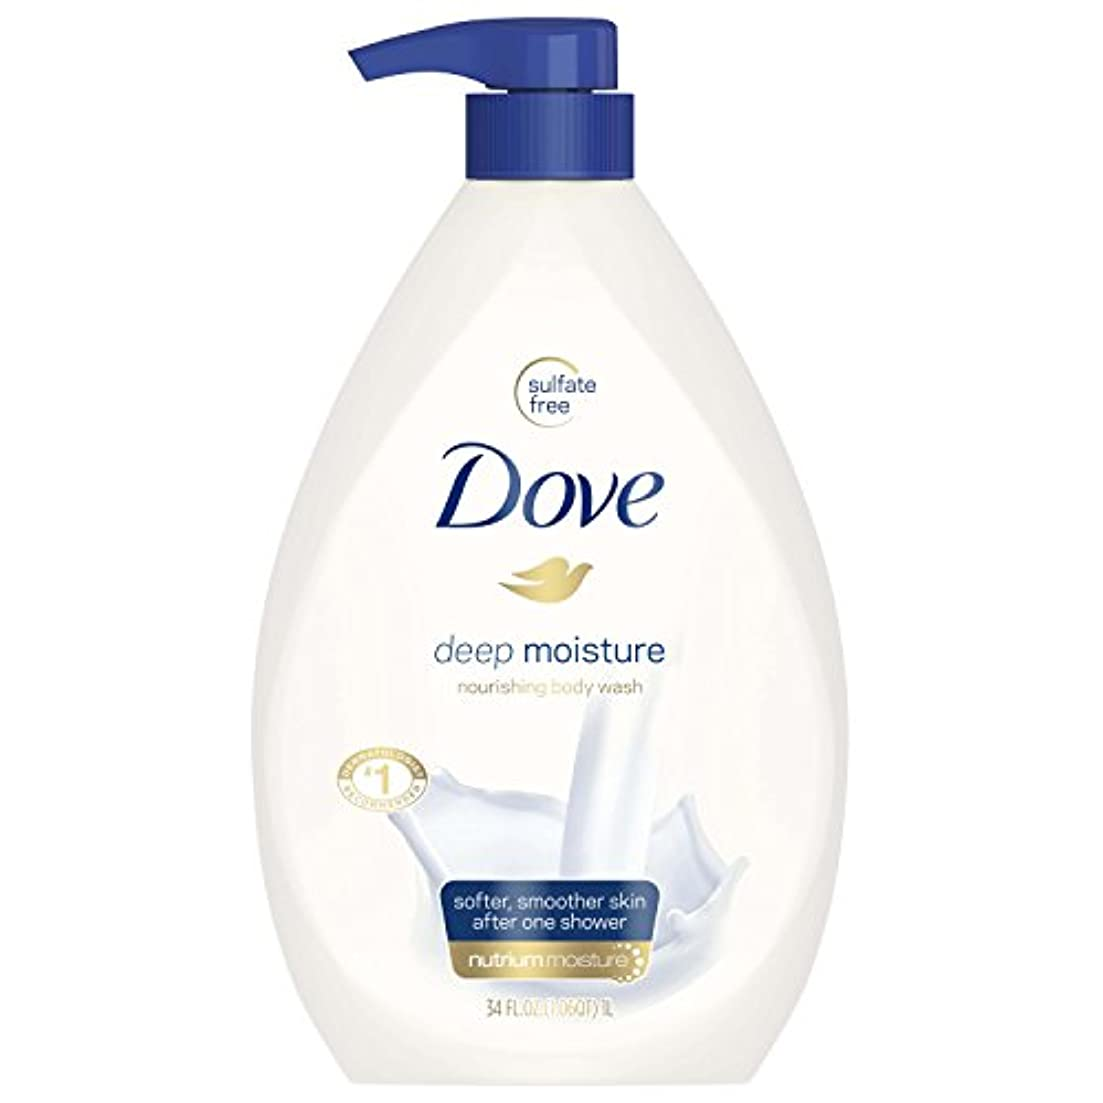 Dove Body Wash, Deep Moisture Pump 34 Ounce by Dove